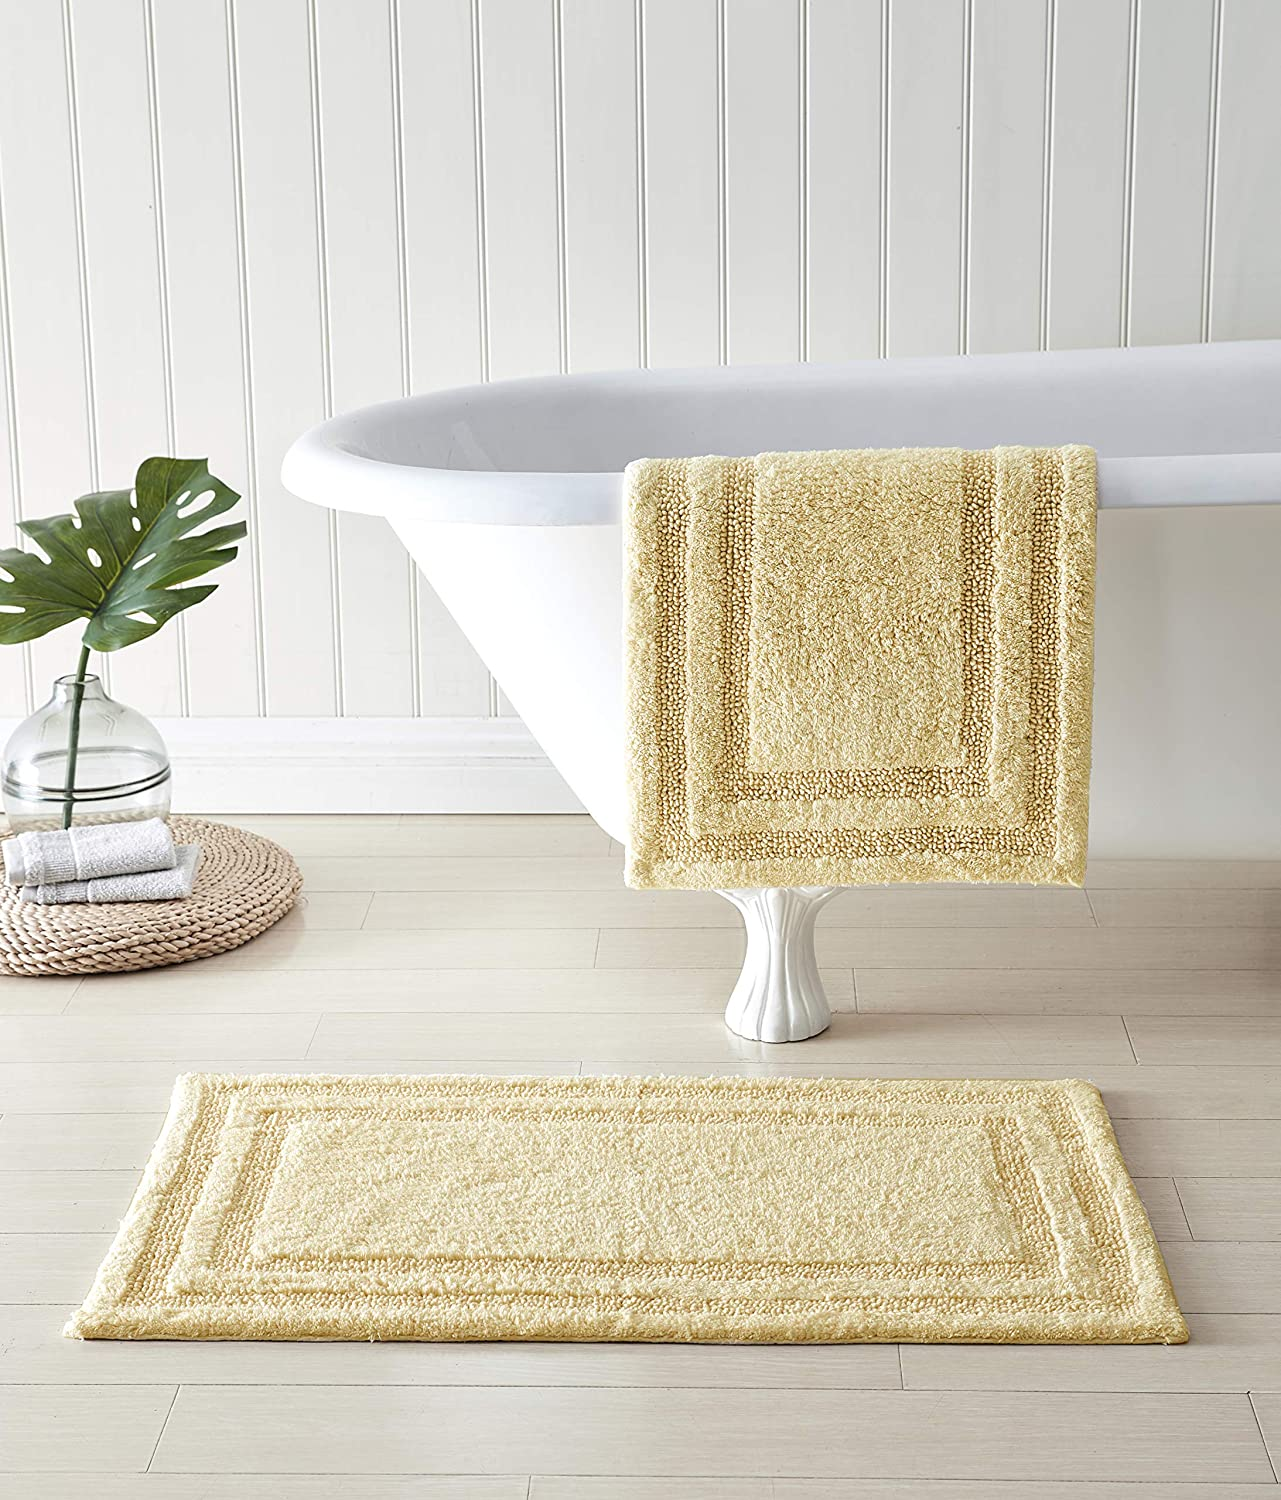 Tommy Bahama Home Isla Collection Tufted Rug Bath Recommended Set-100% C Max 54% OFF